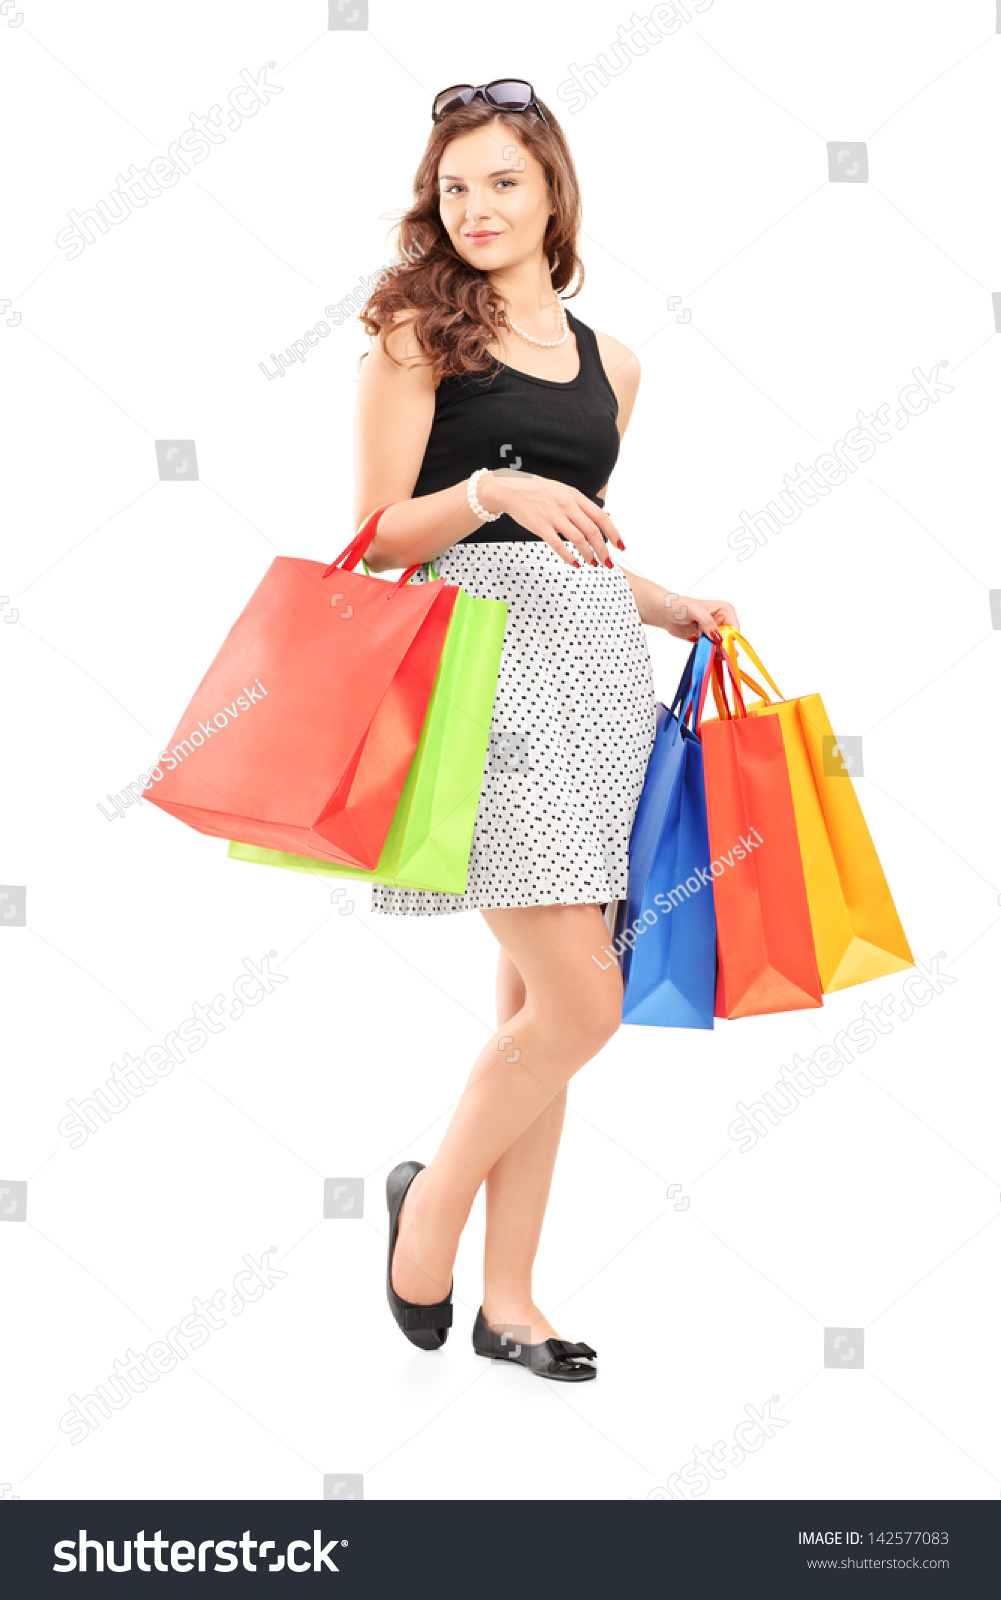 Woman posing with shopping bags isolated on white background full - Full Length Portrait Of A Beautiful Young Woman Posing With Shopping Bags Isolated On White